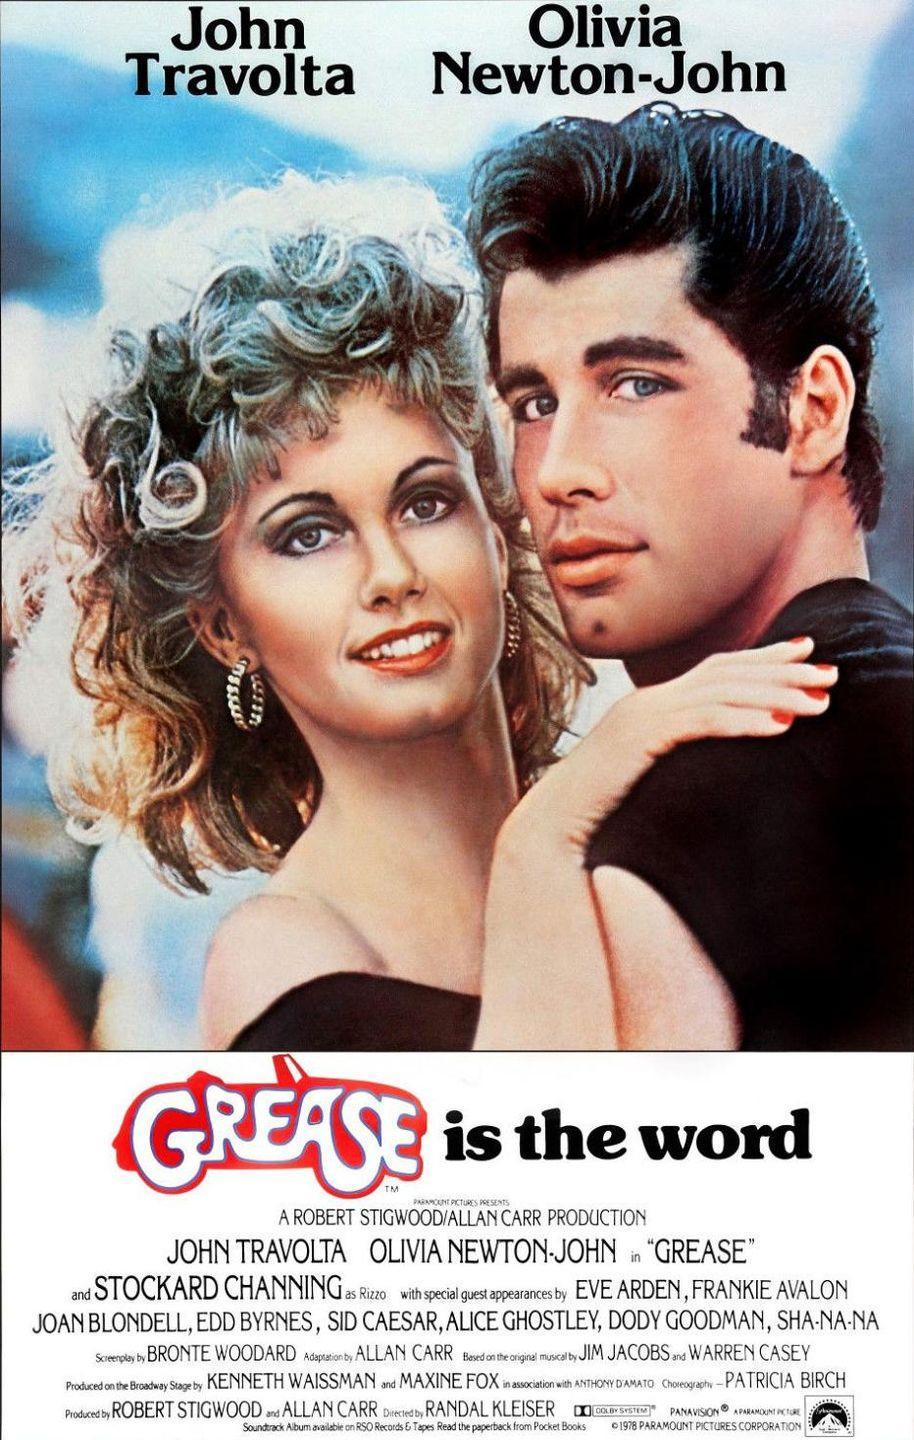 """<p>Grease will <em>always </em>be the word. The story of Sandy and Danny's attempt to make their summer romance continue into the school year despite high school social politics getting in the way is as popular as ever over 40 years after its release. Sure, the plot has its issues when it comes to the whole """"changing yourself for a guy/girl"""" premise, but those frustrations tend to melt away once songs like """"Beauty School Dropout"""" and """"We Go Together"""" come on.</p><p><a class=""""link rapid-noclick-resp"""" href=""""https://www.amazon.com/Grease-Randal-Kleiser/dp/B0026SFEW8/ref=sr_1_2?tag=syn-yahoo-20&ascsubtag=%5Bartid%7C10072.g.27734413%5Bsrc%7Cyahoo-us"""" rel=""""nofollow noopener"""" target=""""_blank"""" data-ylk=""""slk:WATCH NOW"""">WATCH NOW</a></p>"""